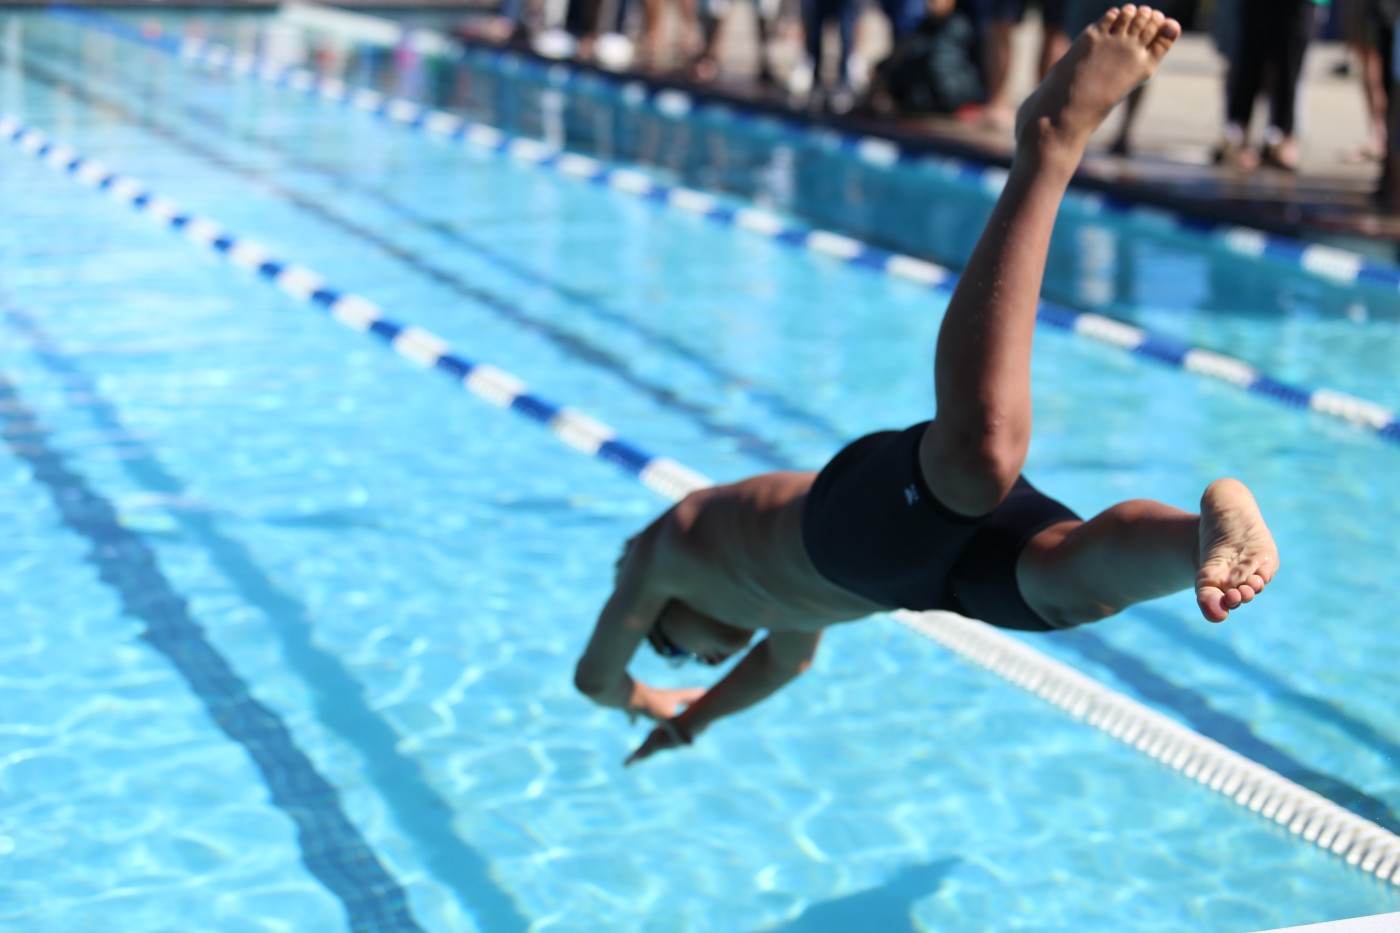 A man diving into a pool. The picture should symbolize a person which is ready to start developing a web application.